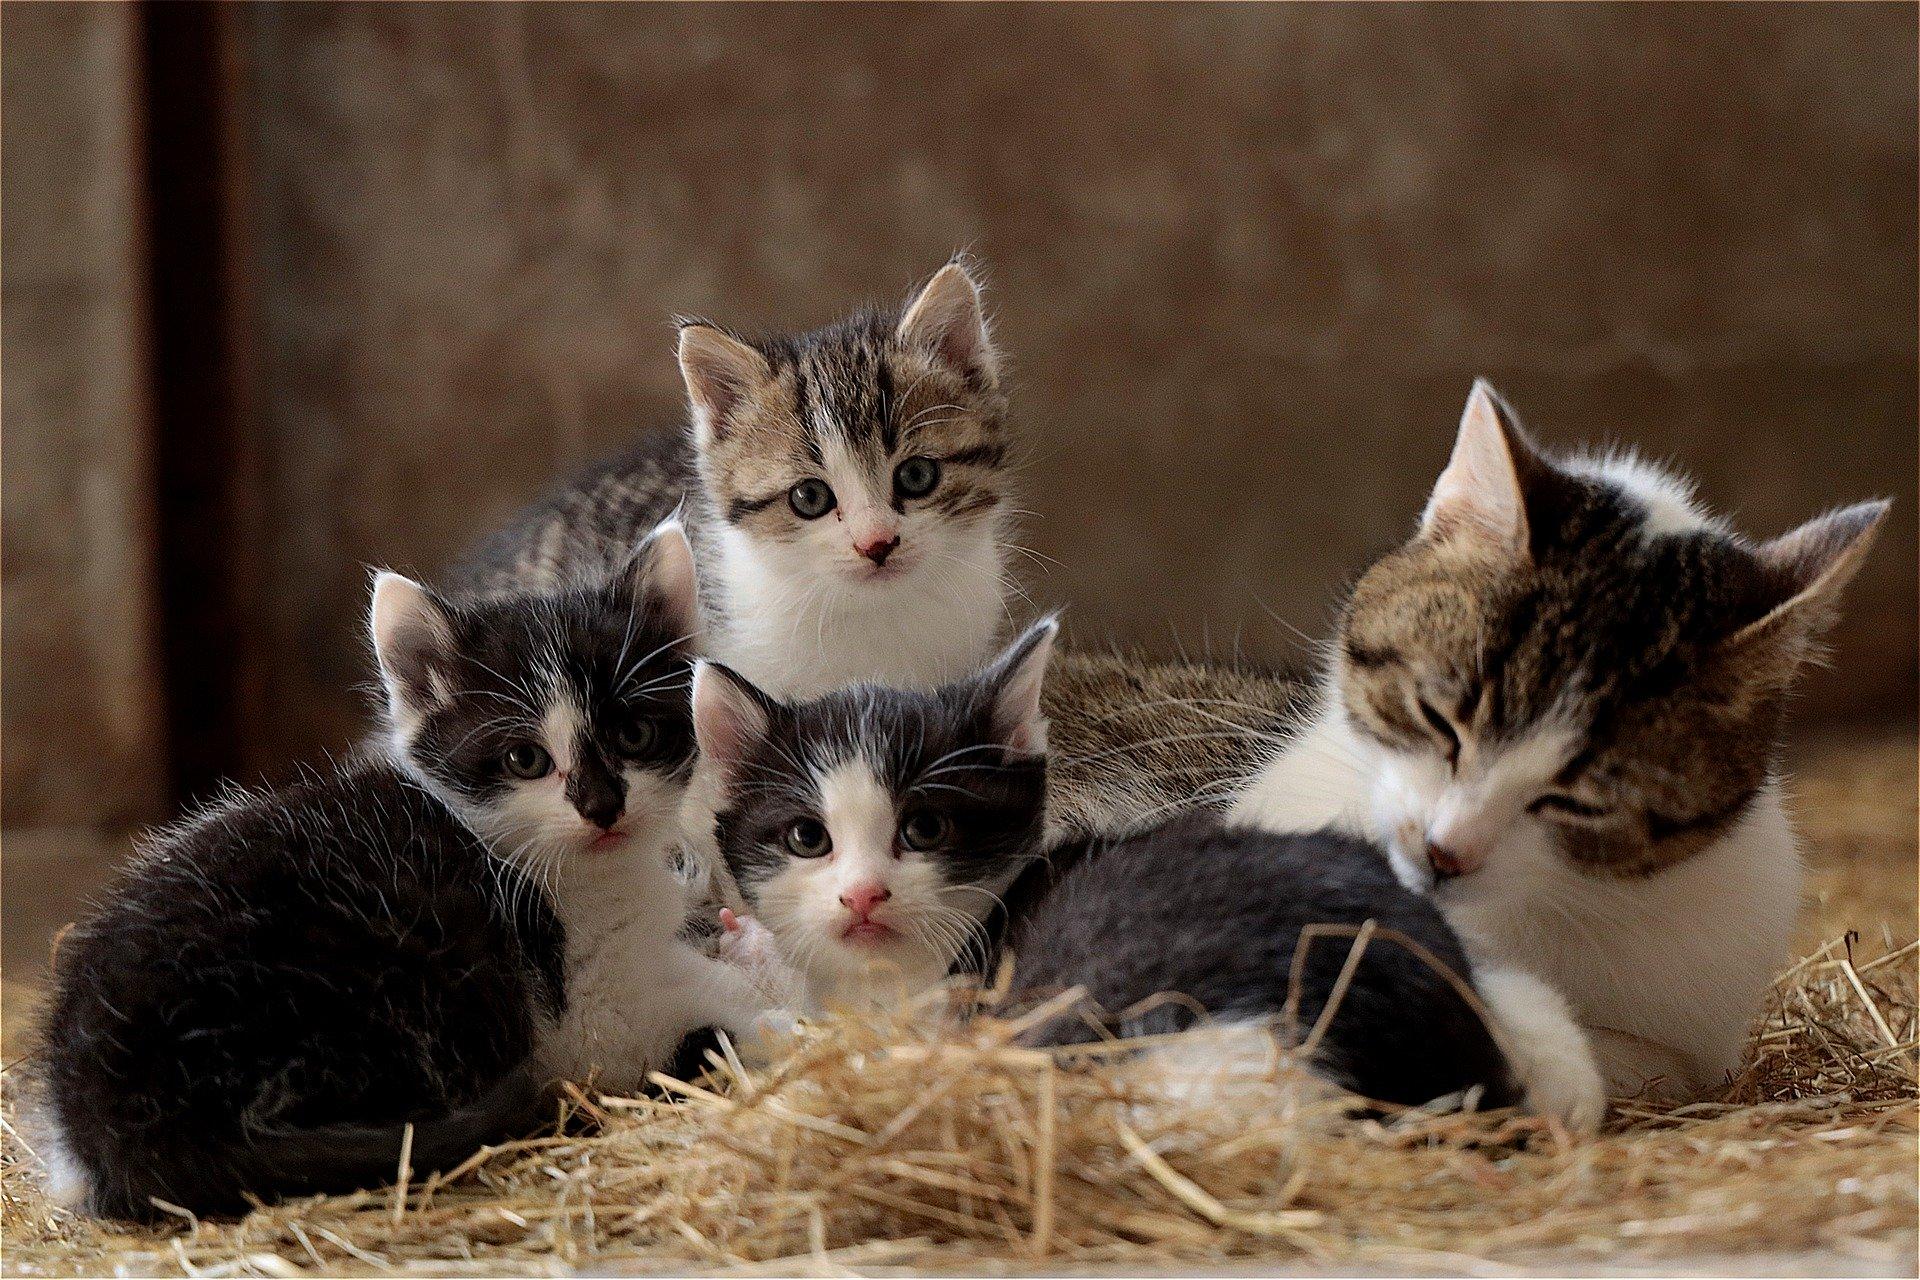 These Are The 22 Most Expensive Kittens To Buy In The Uk Glasgow Times